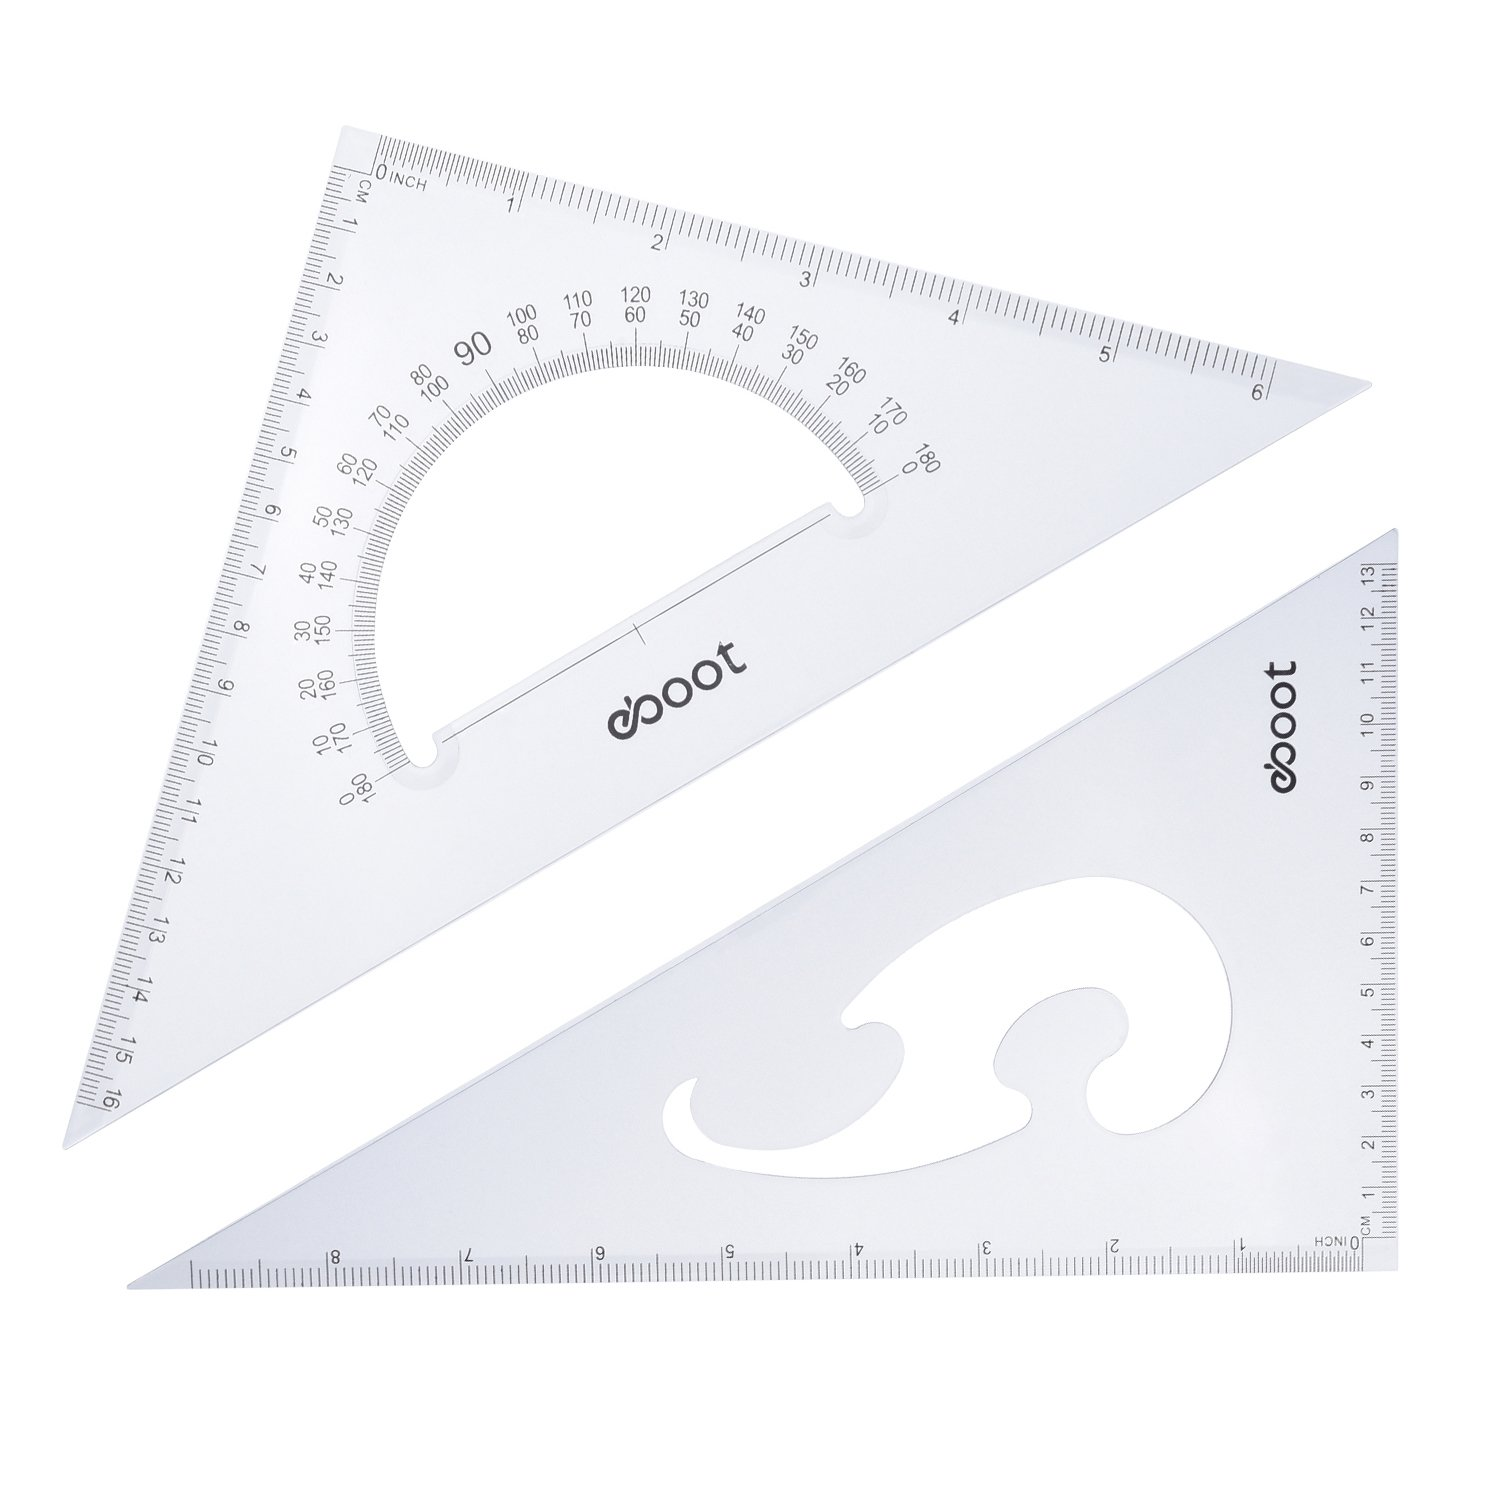 eBoot Large Triangle Ruler Square Set, 30/60 and 45/90 Degrees, Set of 2 by eBoot (Image #4)